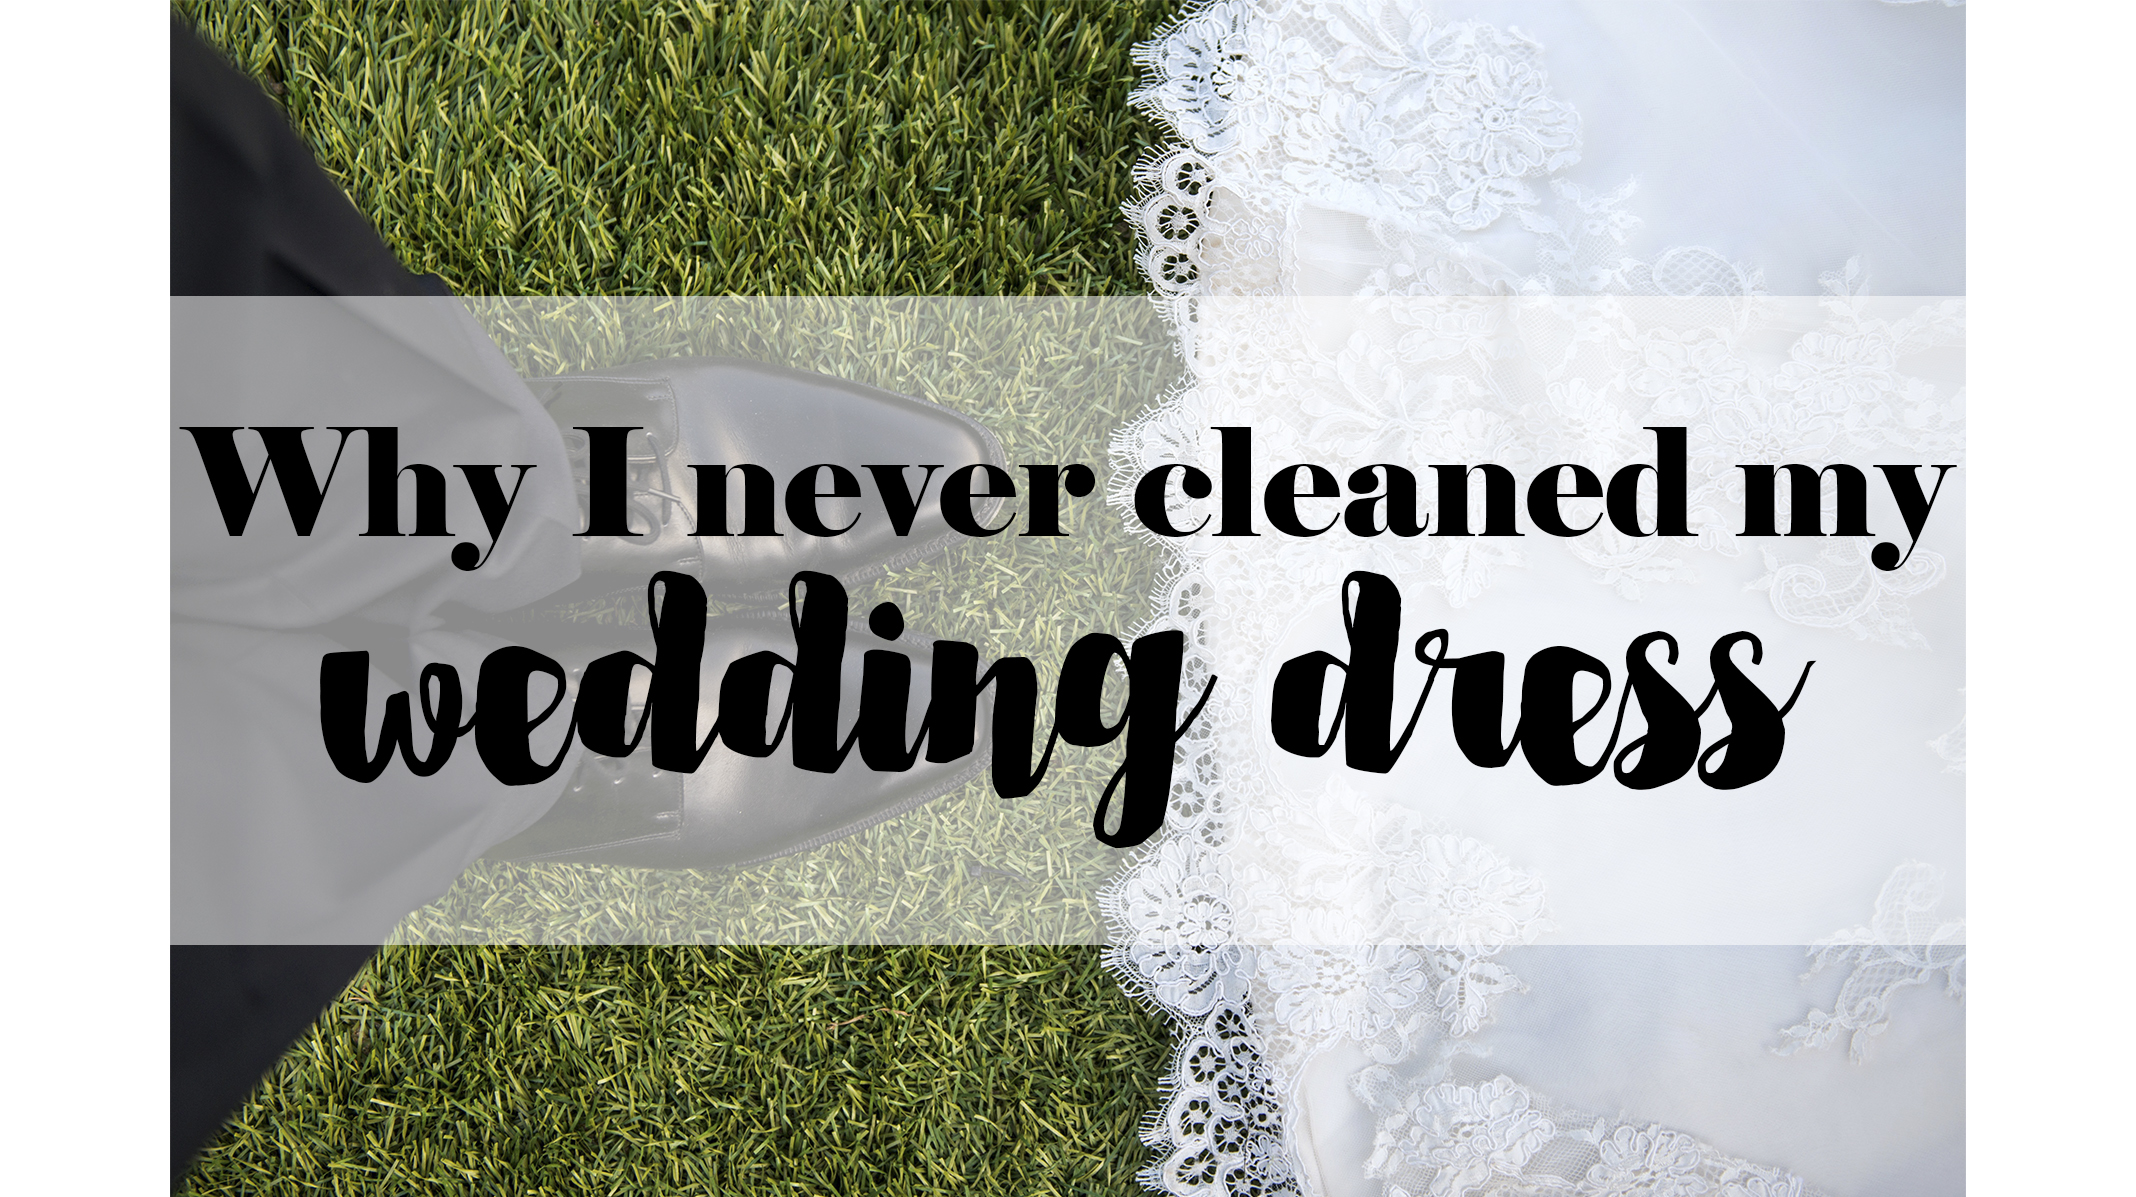 why i never cleaned my wedding dress